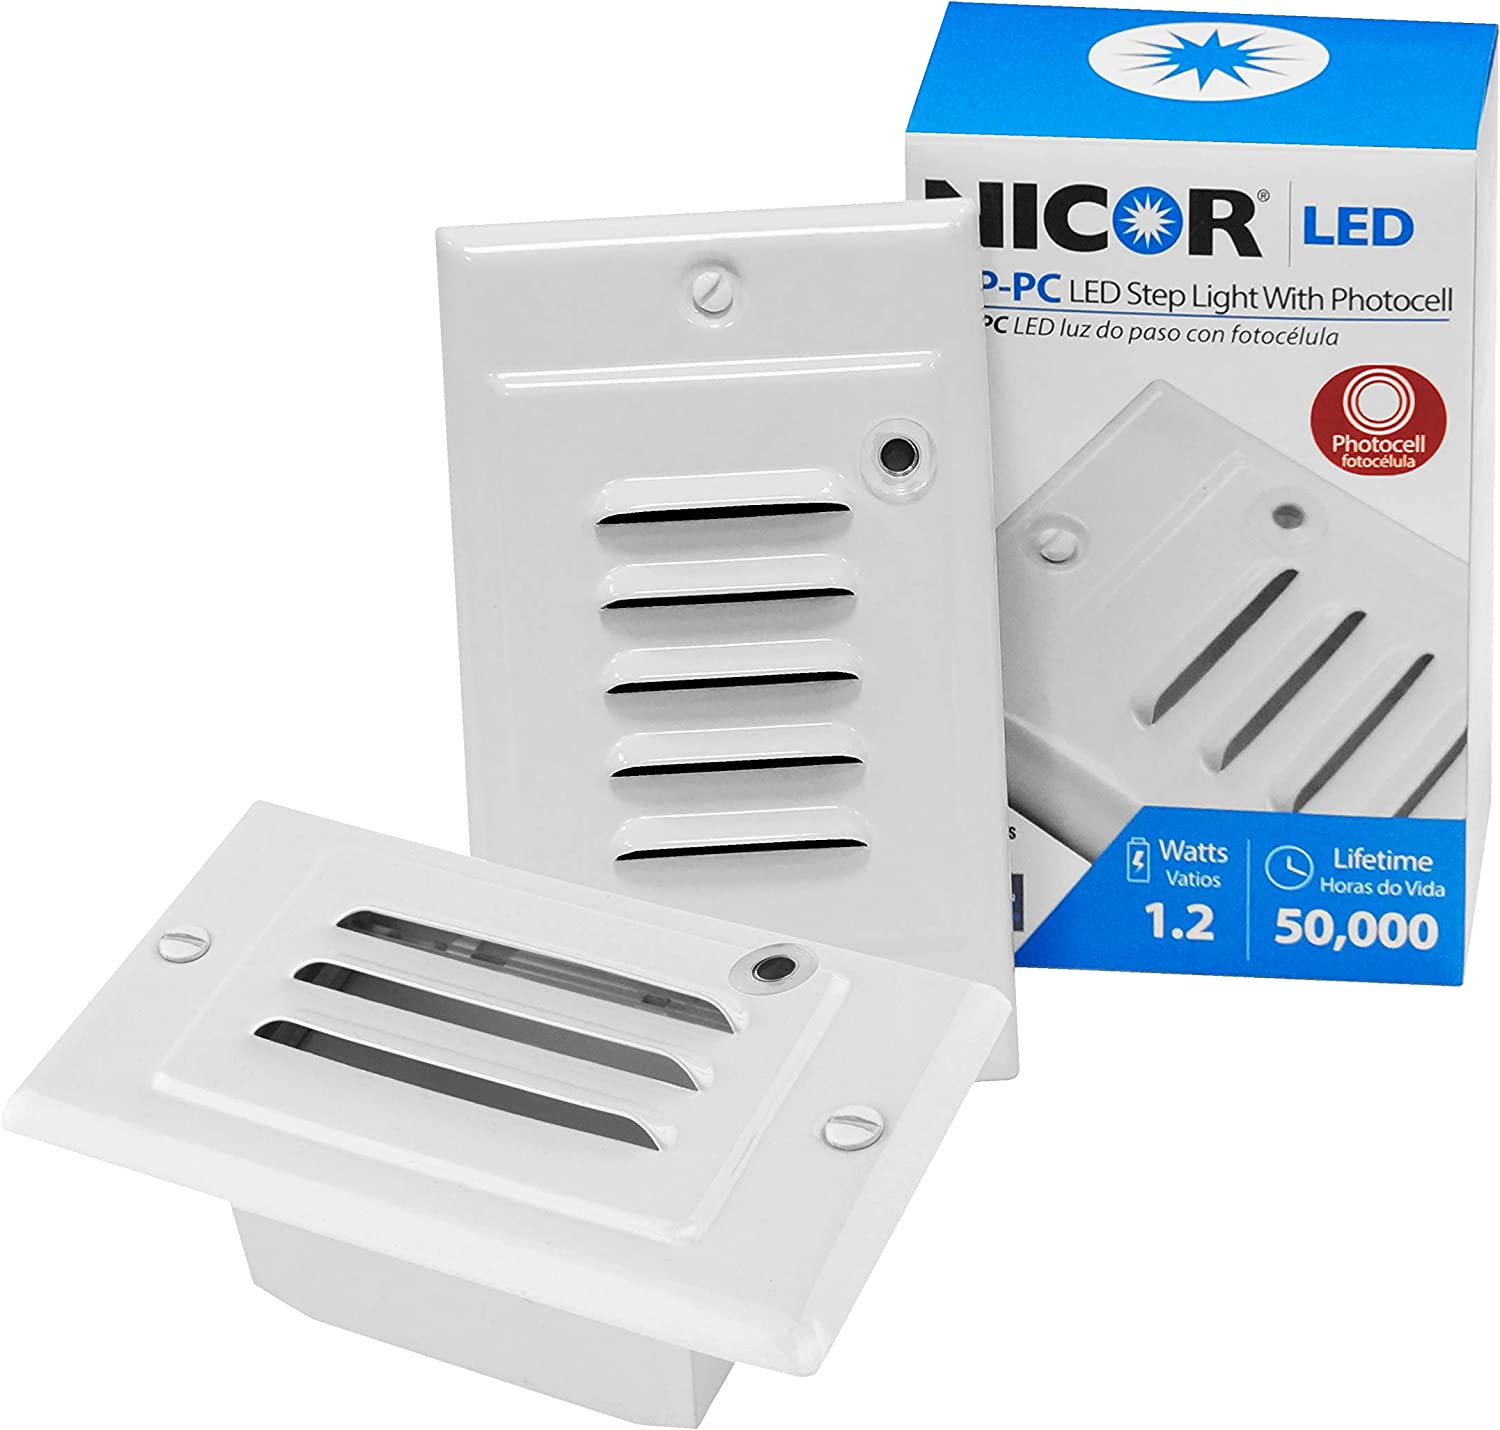 NICOR Genuine Lighting LED Step Light in Photocell with White STP-10-12 Max 64% OFF